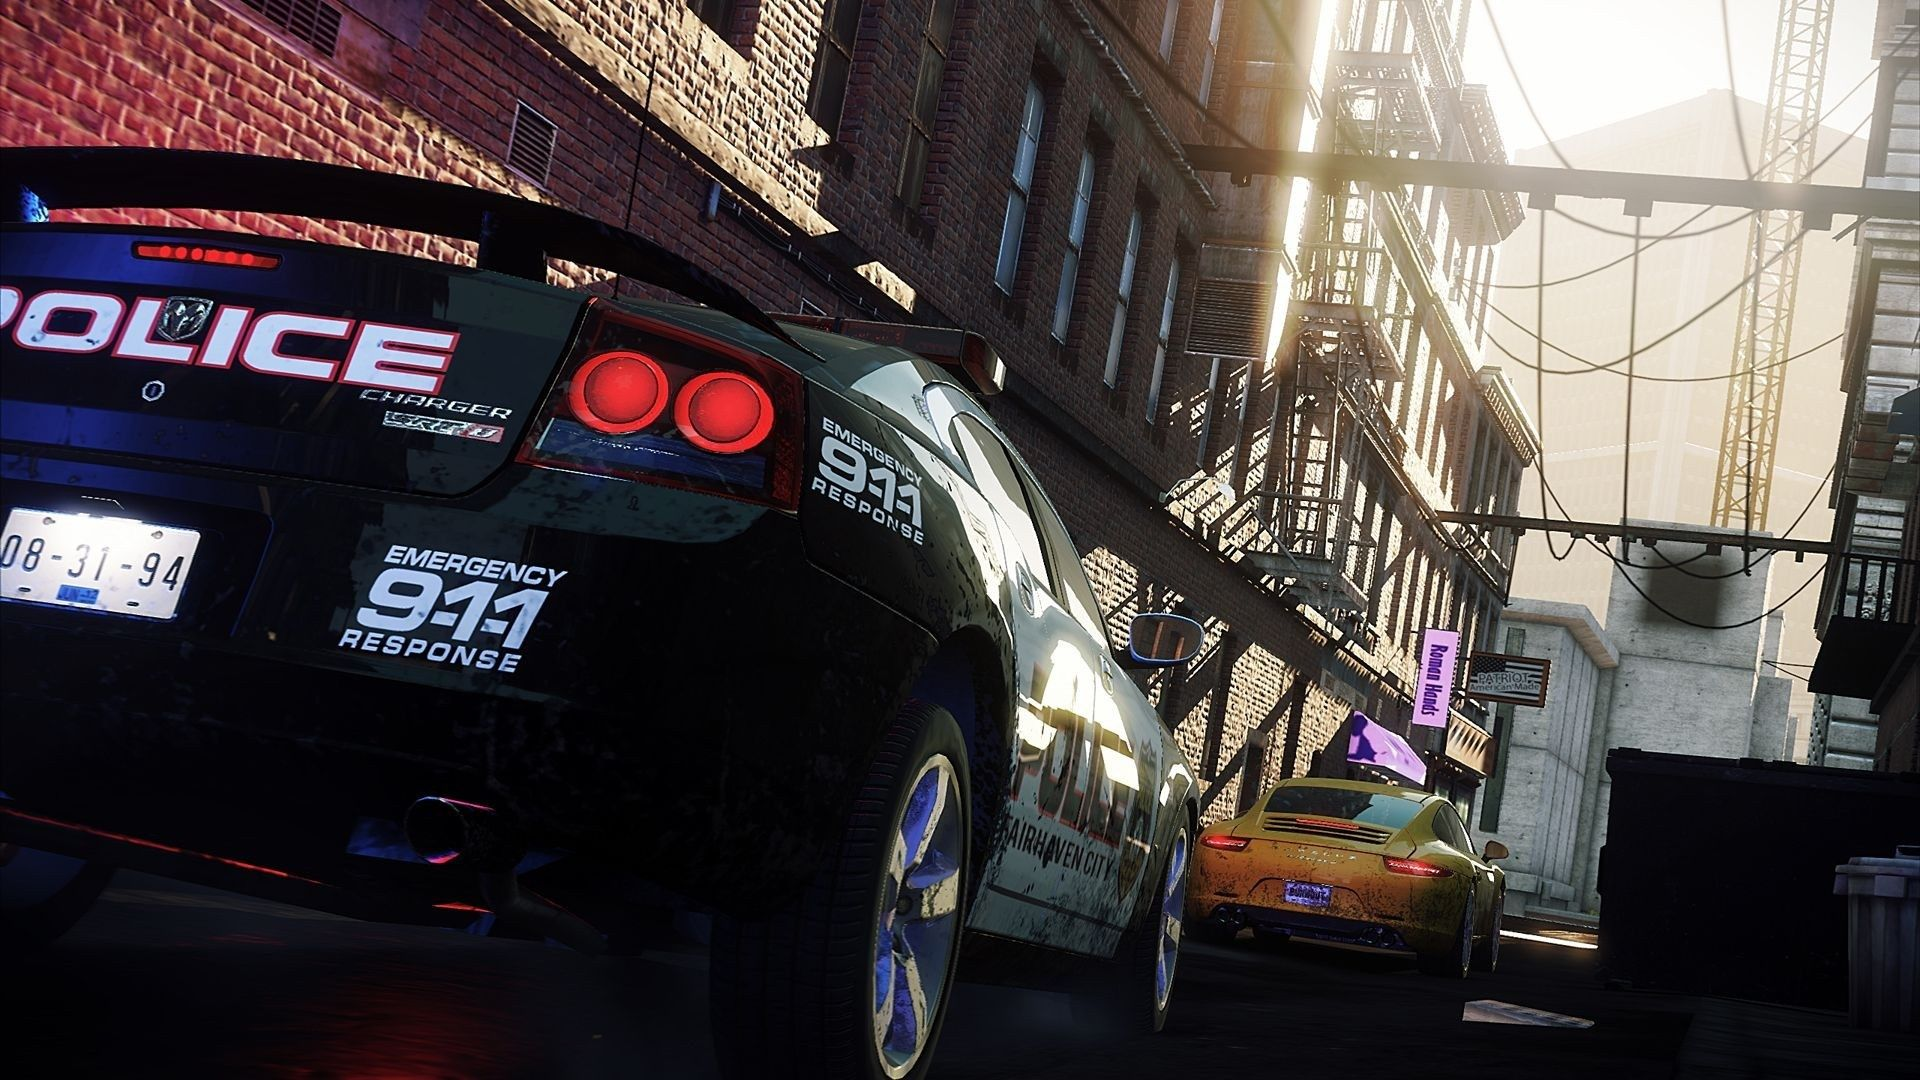 1920x1080 HD Widescreen Need For Speed Most Wanted 2012